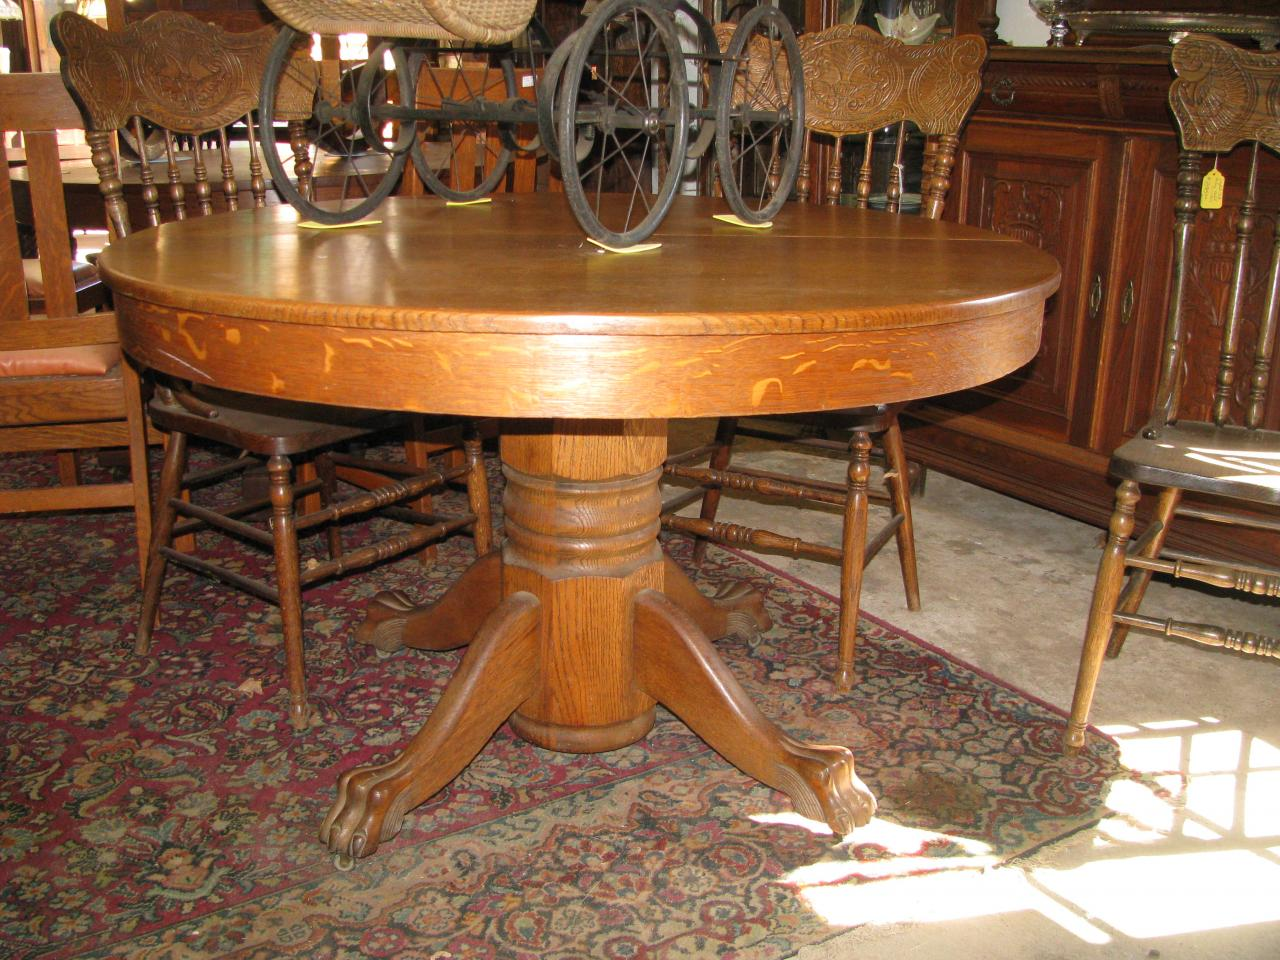 Zs Antiques Restorations ANTIQUE OAK WALNUT AND PINE TABLES - Claw foot oak dining table